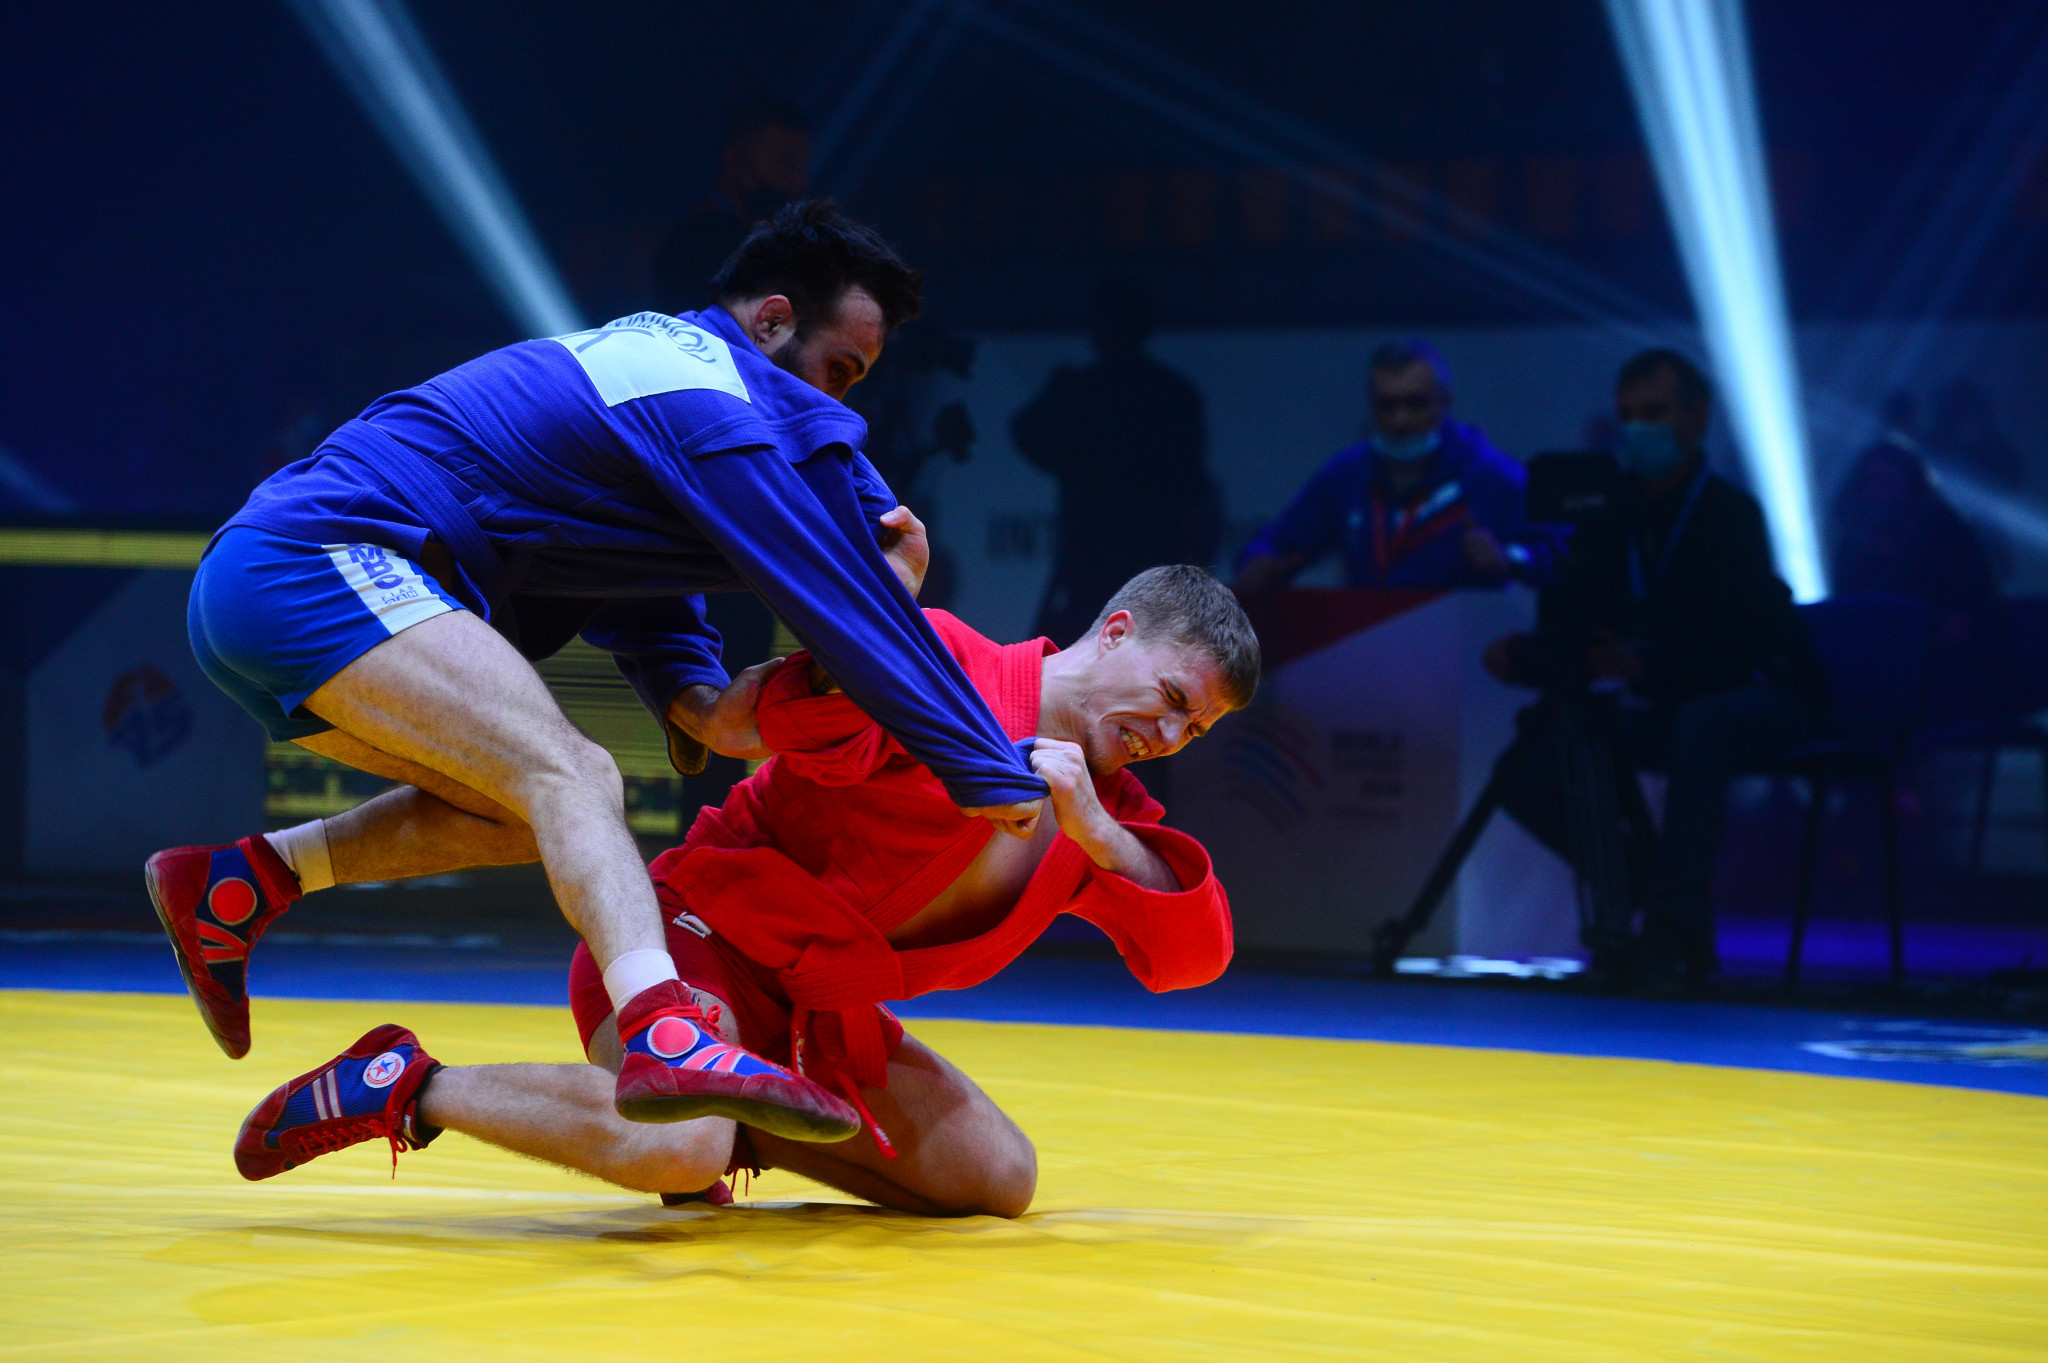 Russian Vladimir Gladkikh, in red, scrapped to a victory in the men's 57kg ©FIAS